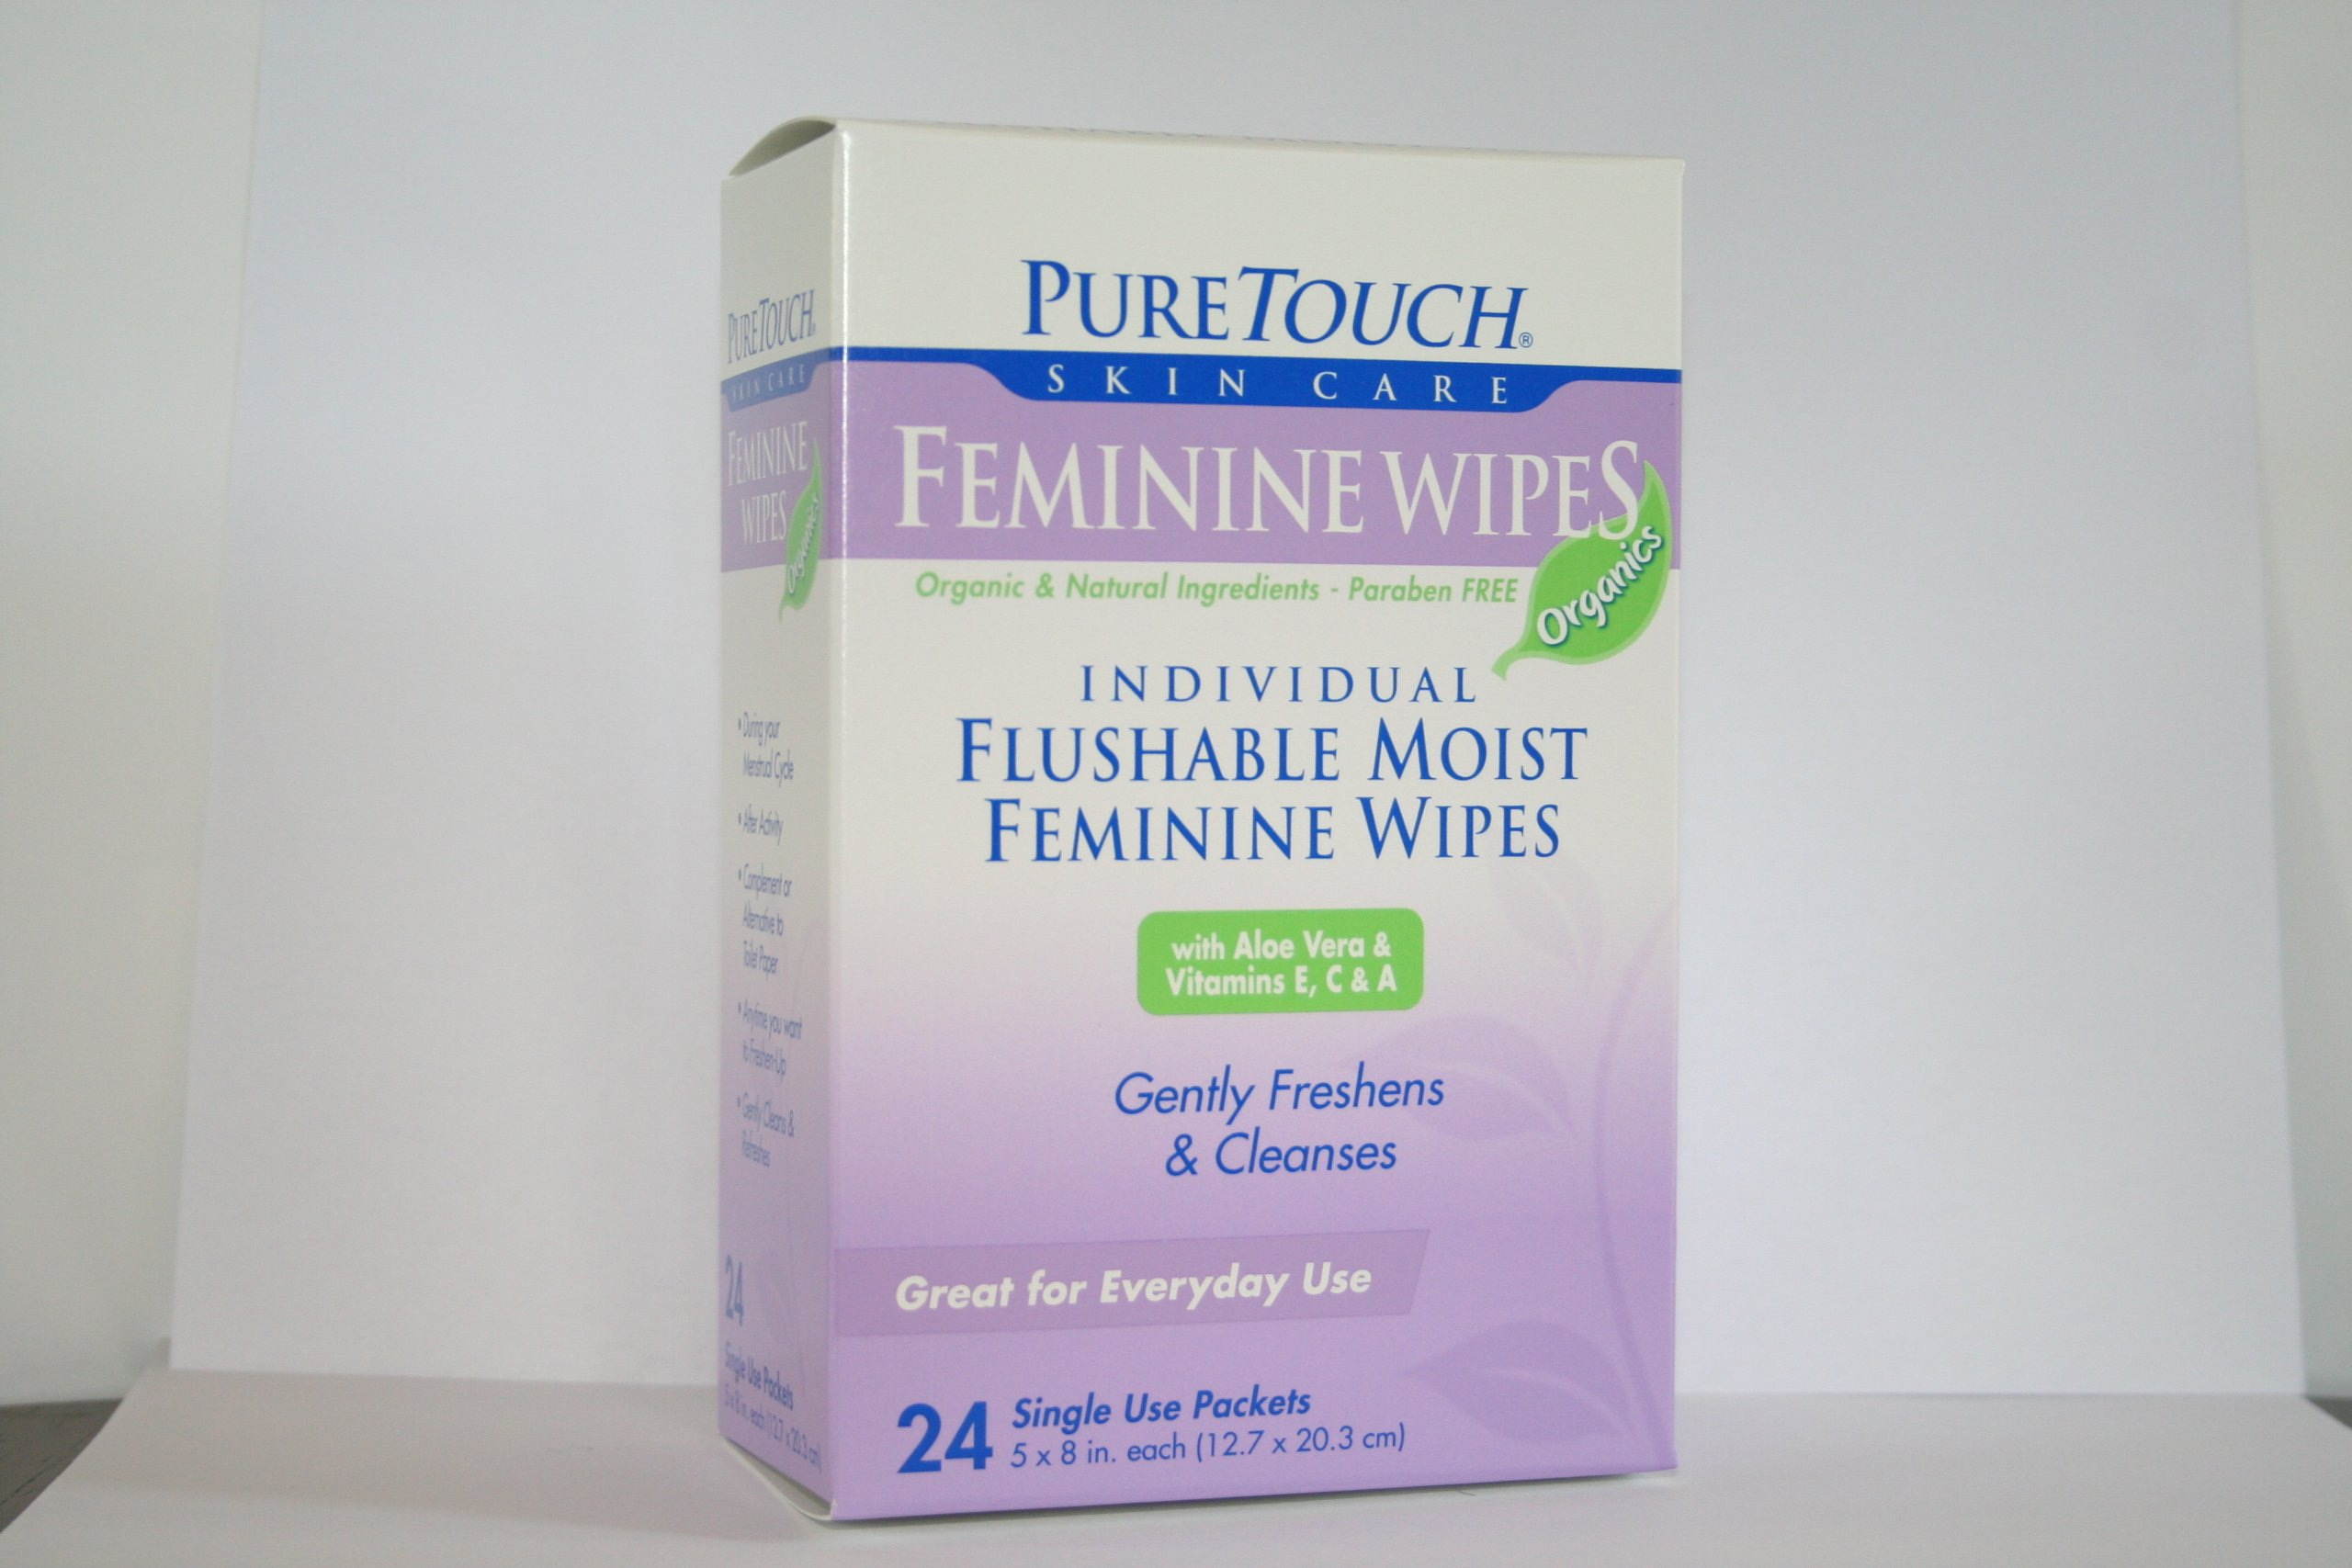 Pure Touch Feminine Wipes ORGANICS 24 Individual Flushable Moist Wipes 6 boxes 144 Single-Use-Packets